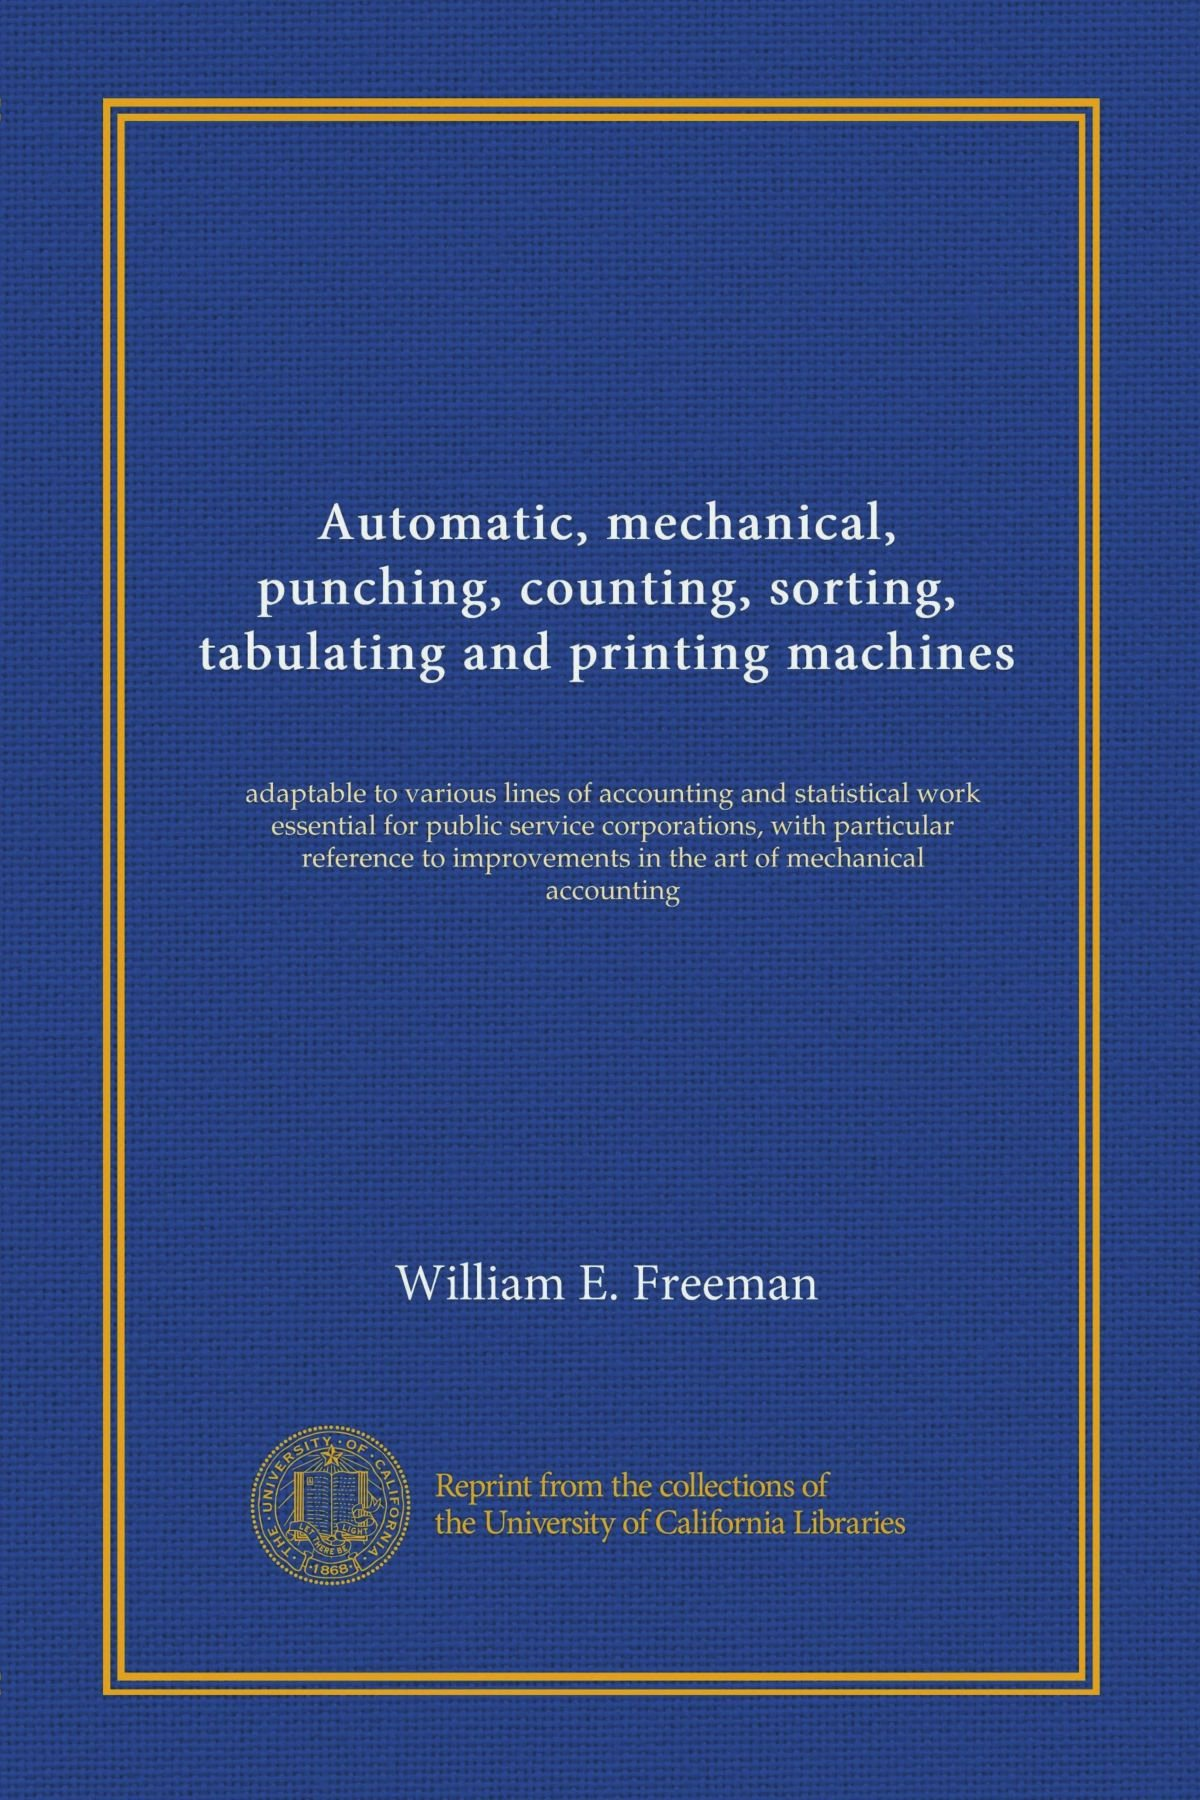 Read Online Automatic, mechanical, punching, counting, sorting, tabulating and printing machines: adaptable to various lines of accounting and statistical work ... in the art of mechanical accounting pdf epub